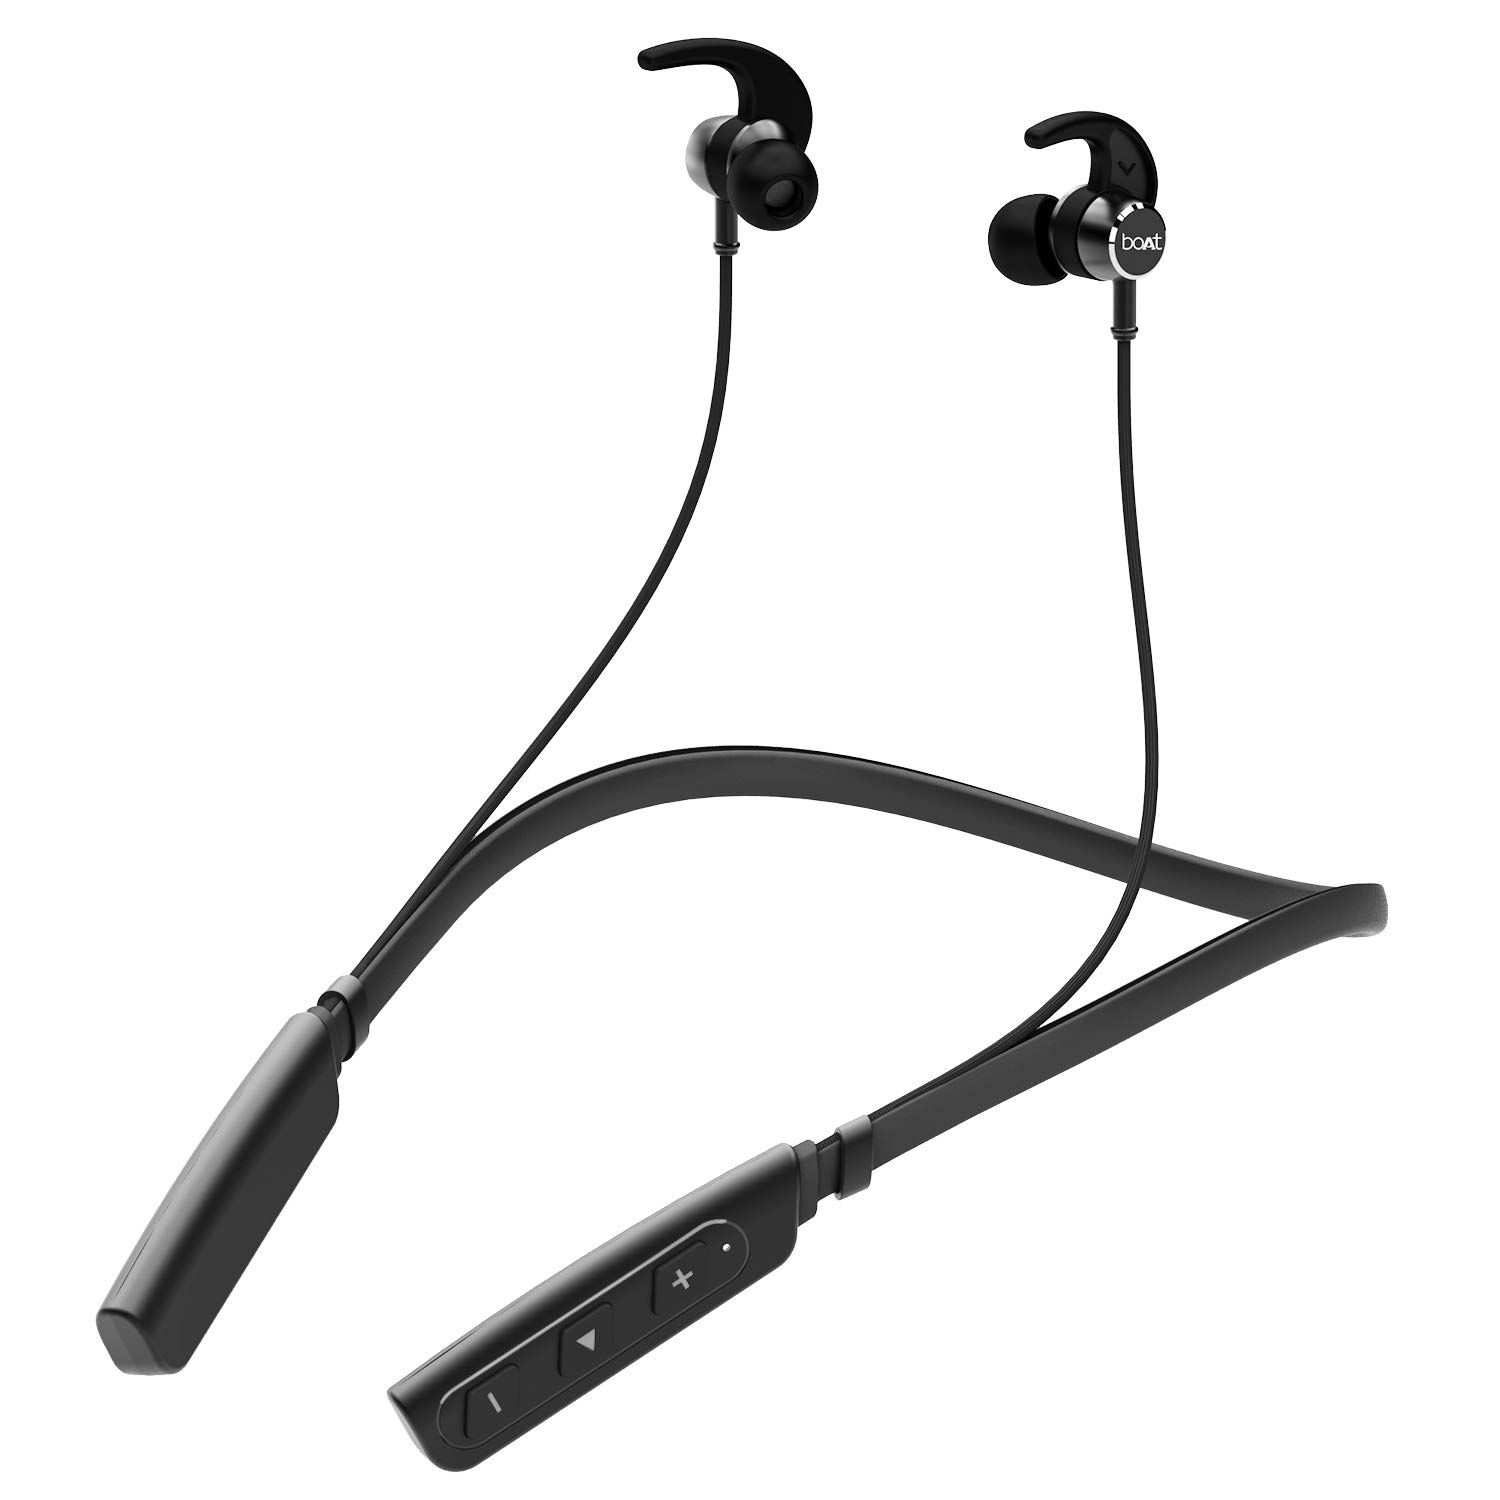 Boat Rockerz 238 Wireless Neckband Headset With Fast Charging Facility